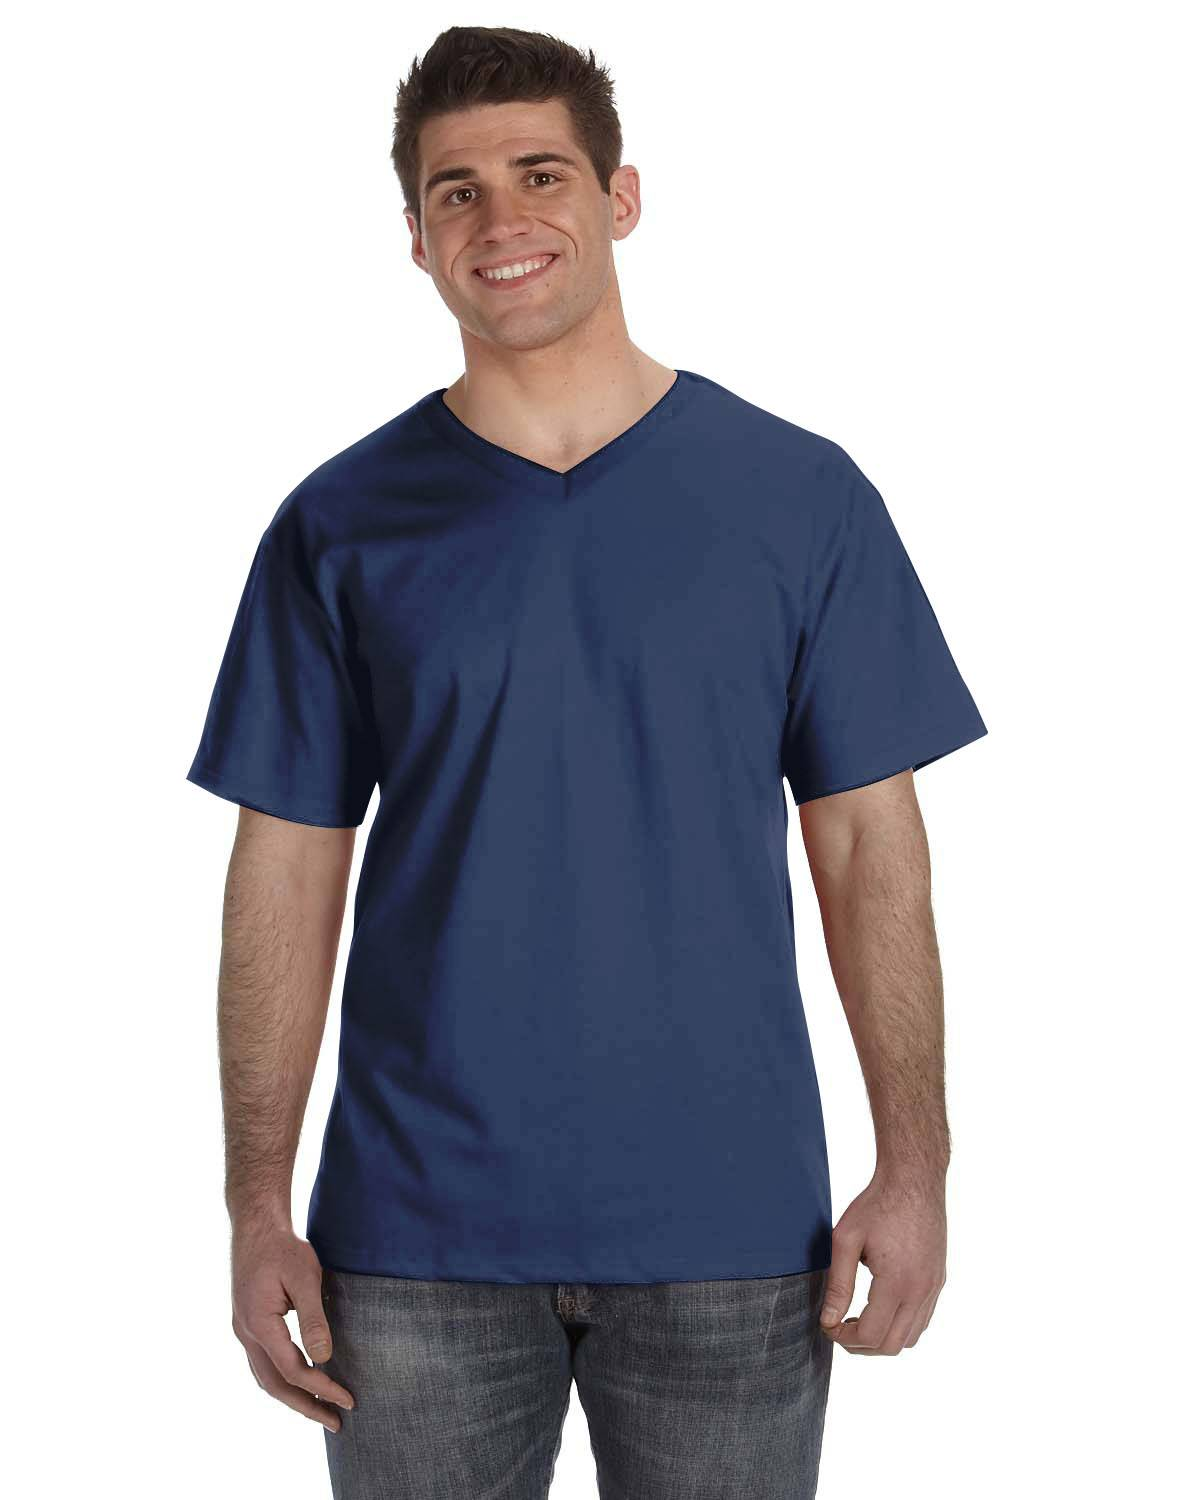 Fruit of the Loom Adult 8.3 oz./lin. yd. HD Cotton V-Neck T-Shirt | 39VR